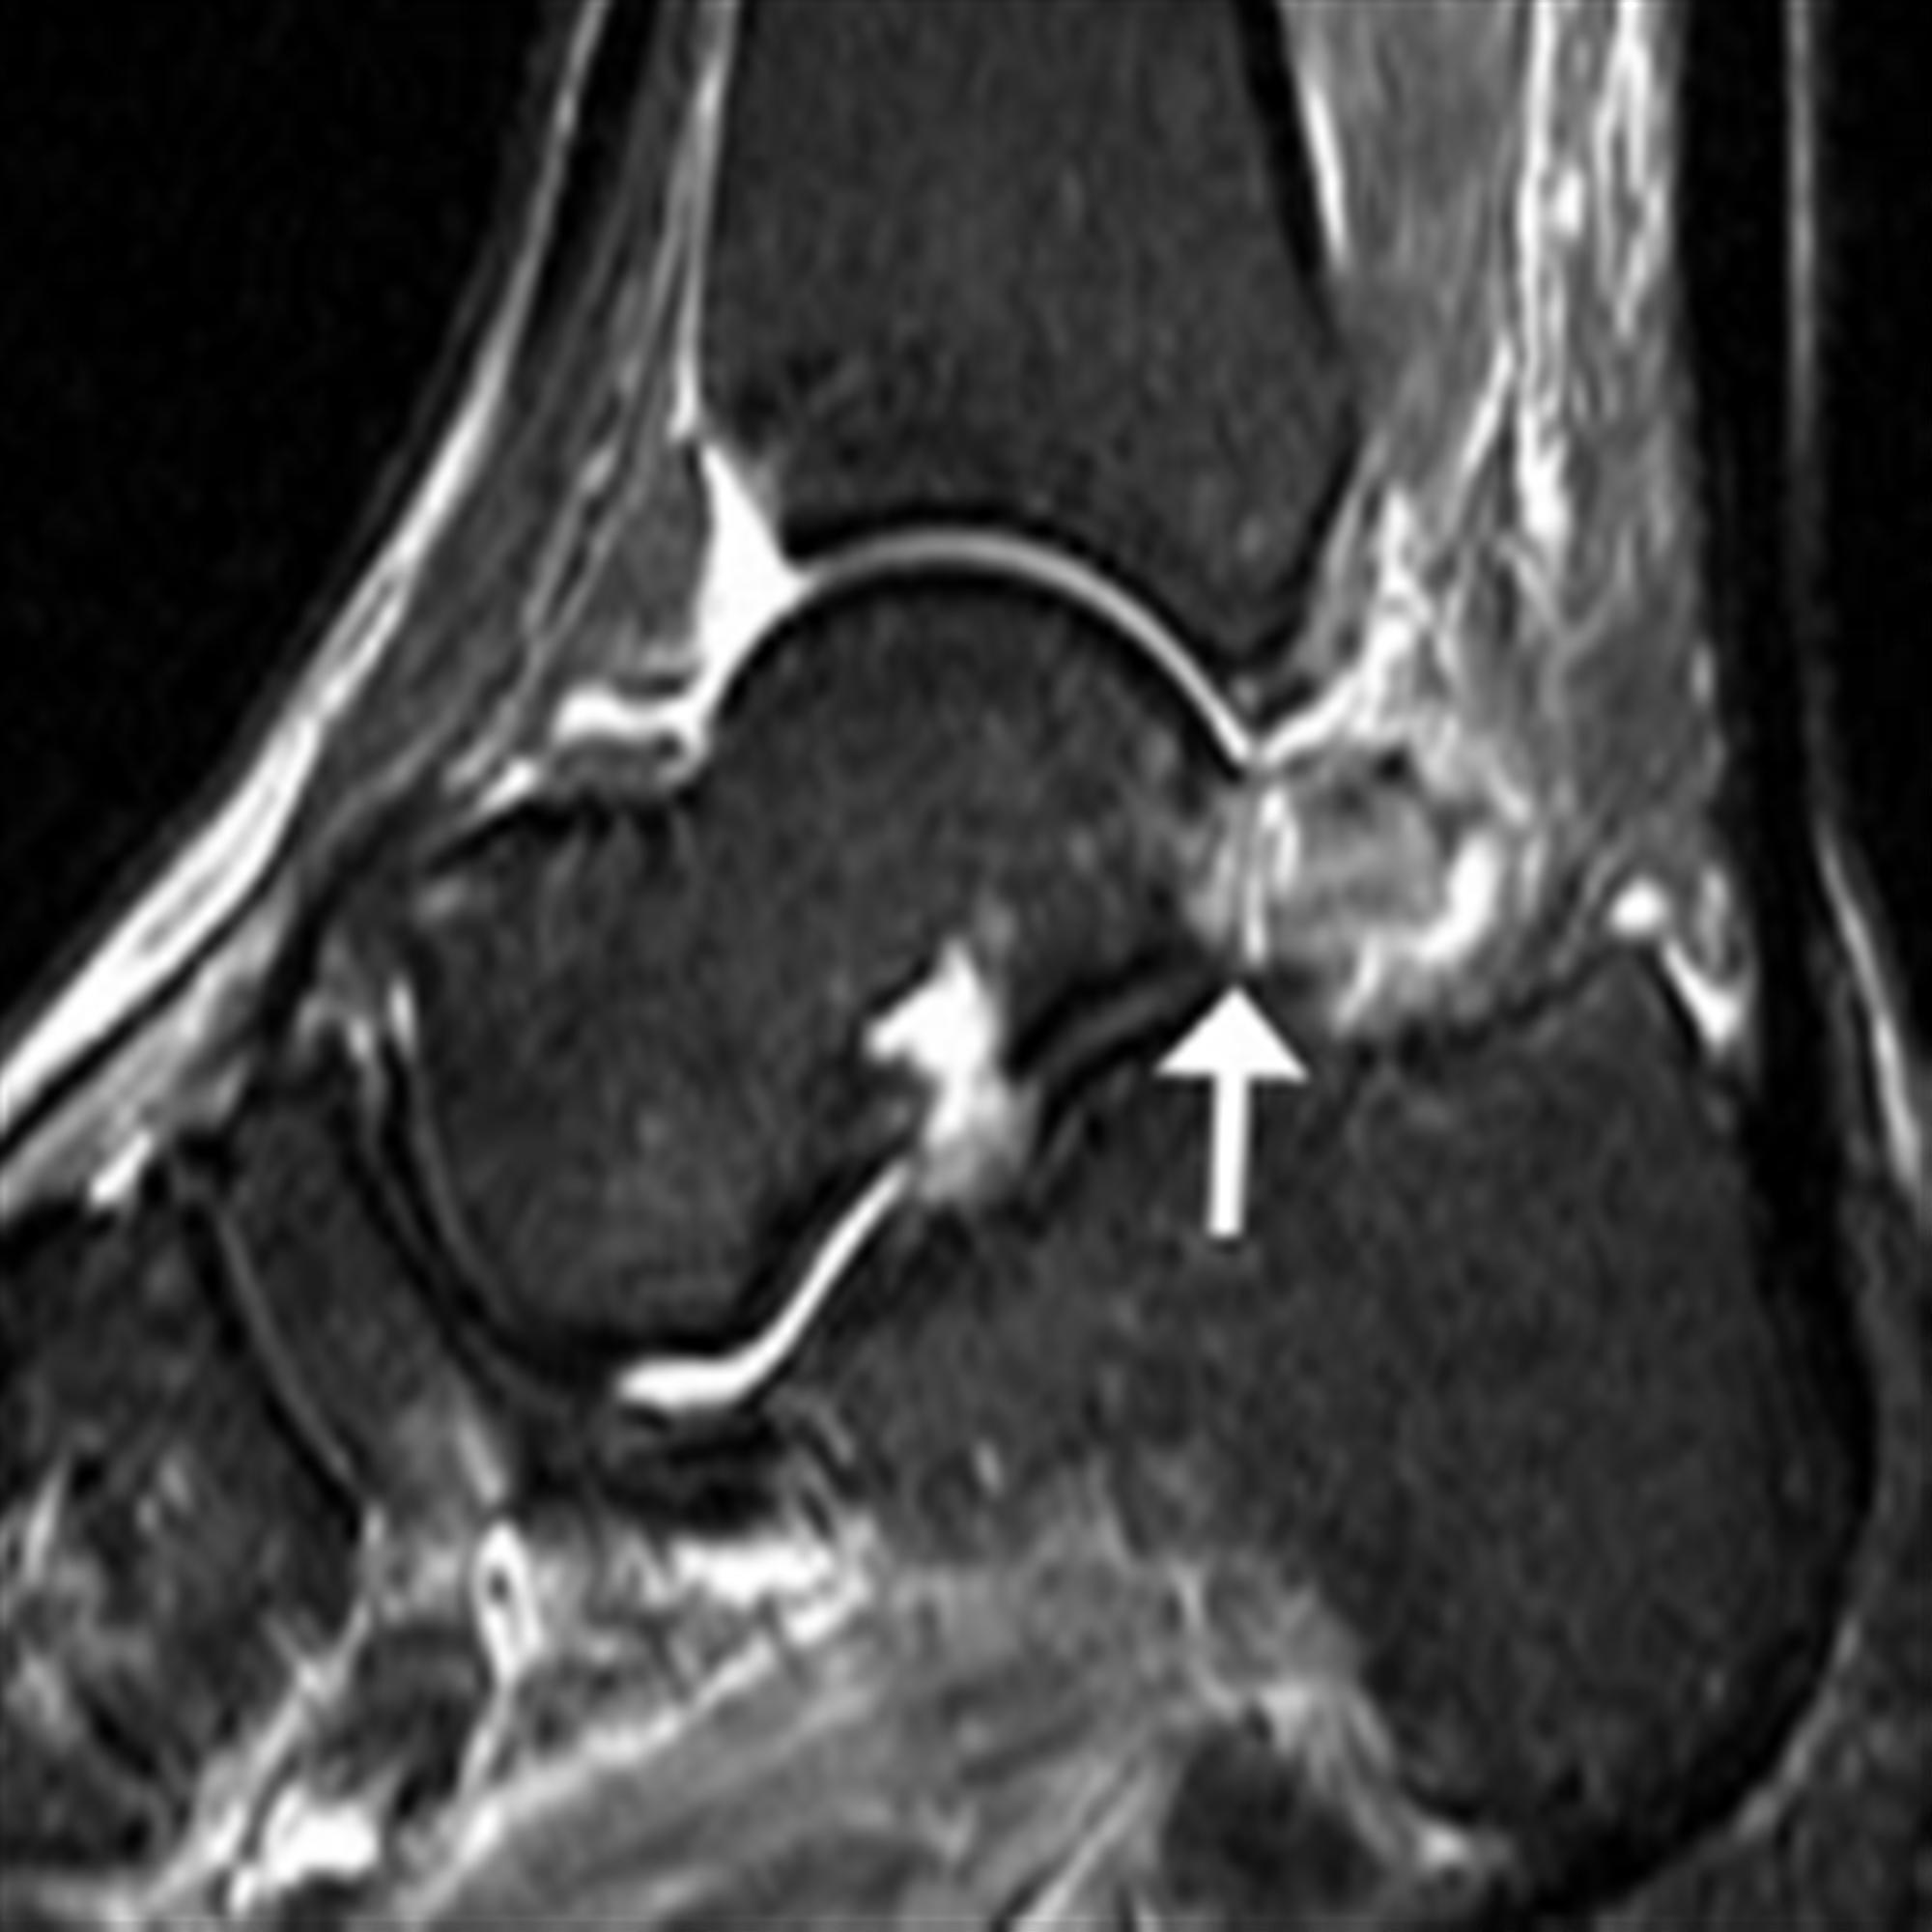 https://upload.orthobullets.com/topic/7049/images/os trigonum mri.jpg